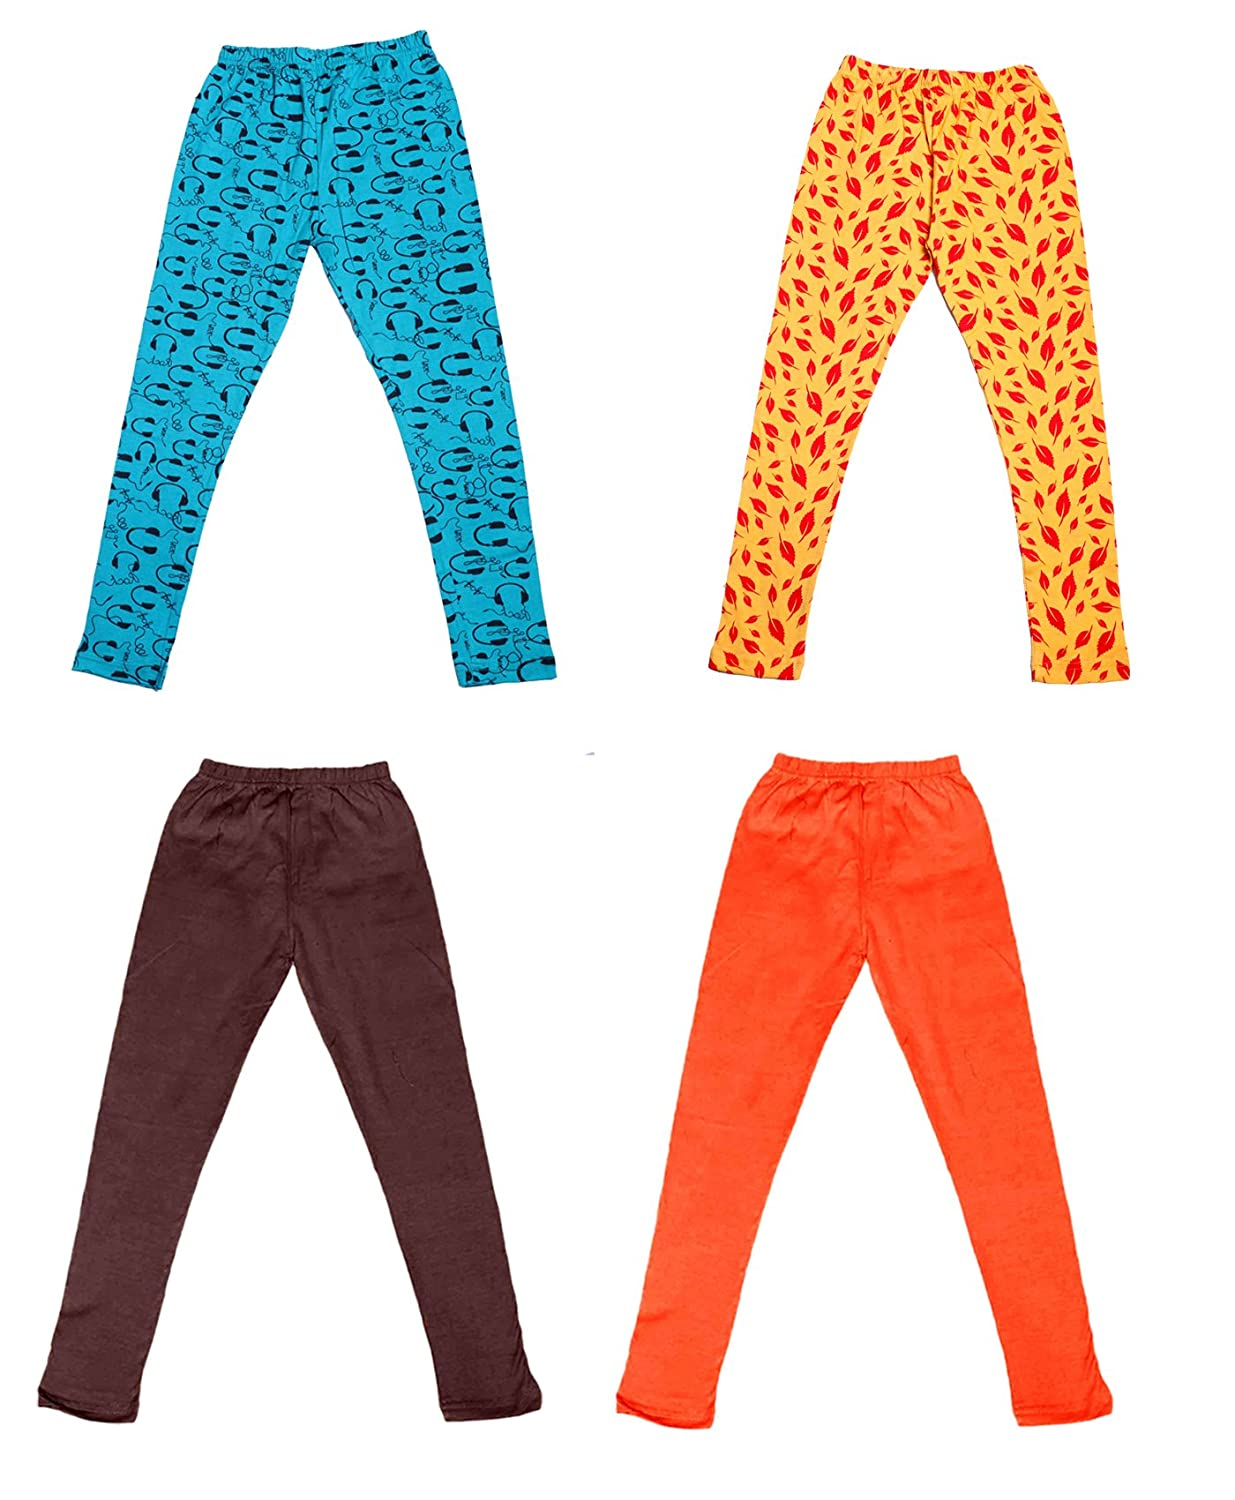 Indistar Girls 2 Cotton Solid Legging Pants /_Multicolor/_Size-7-8 Years/_71413141718-IW-P4-30 and 2 Cotton Printed Legging Pants Pack Of 4